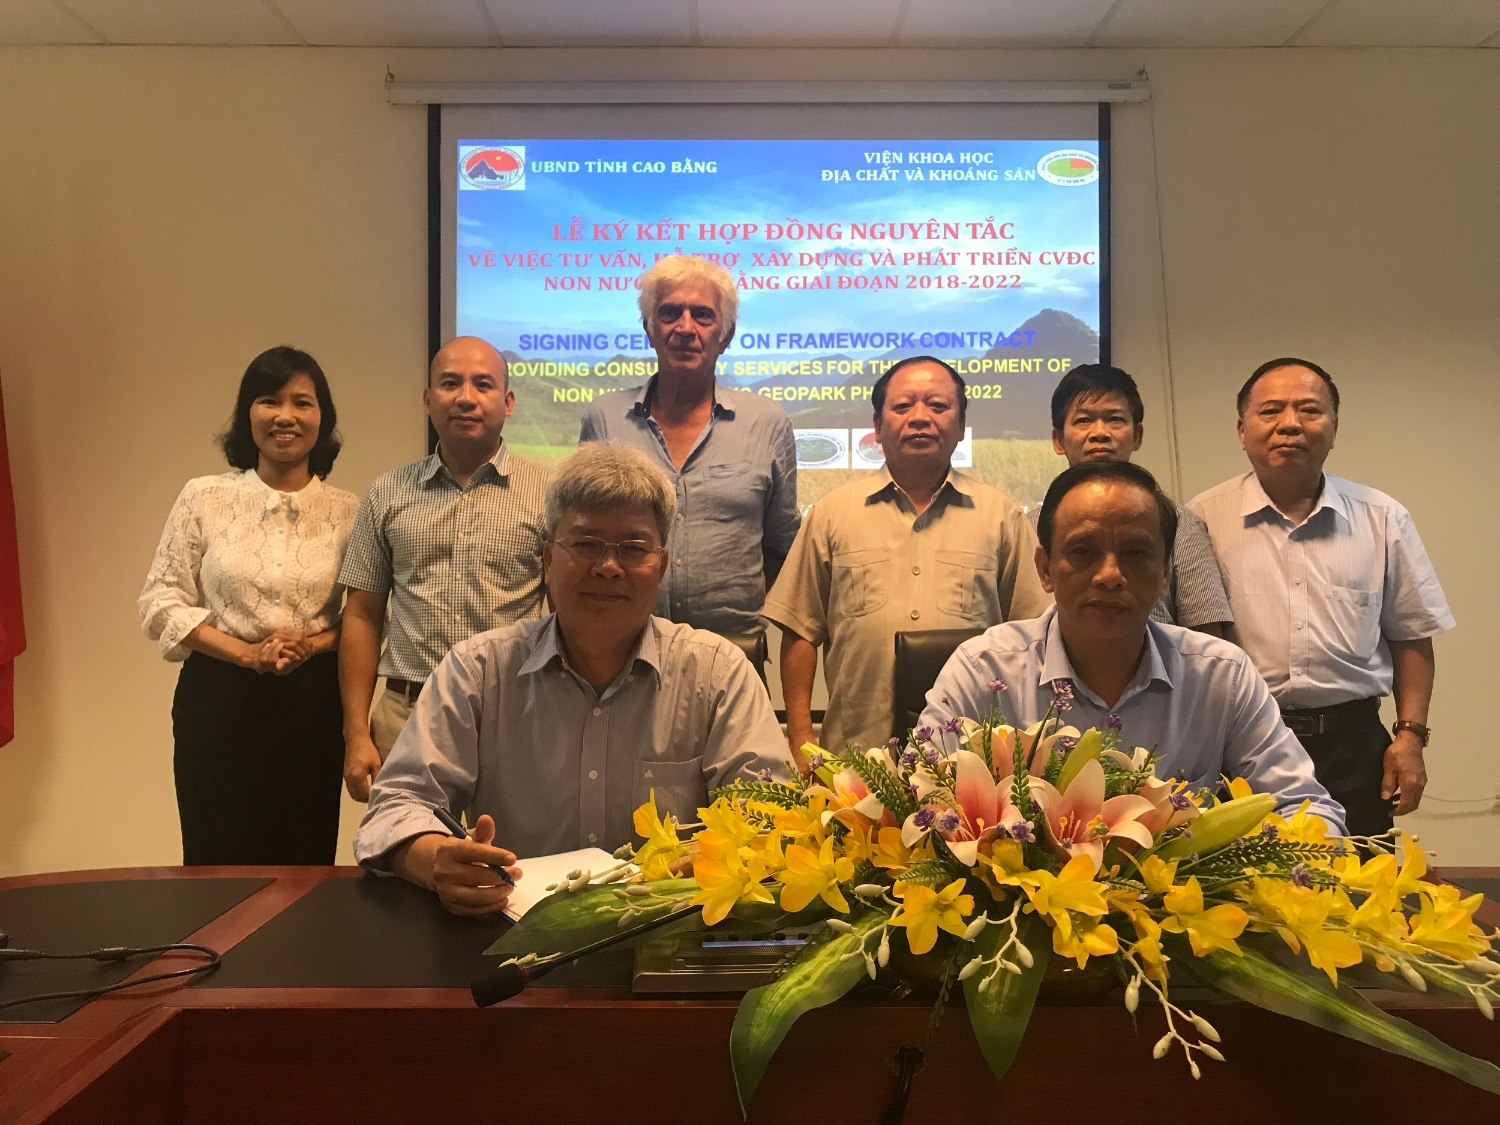 Framework signing ceremony between People's committee of Cao Bang province and Institute of Geology and Mineral resources.